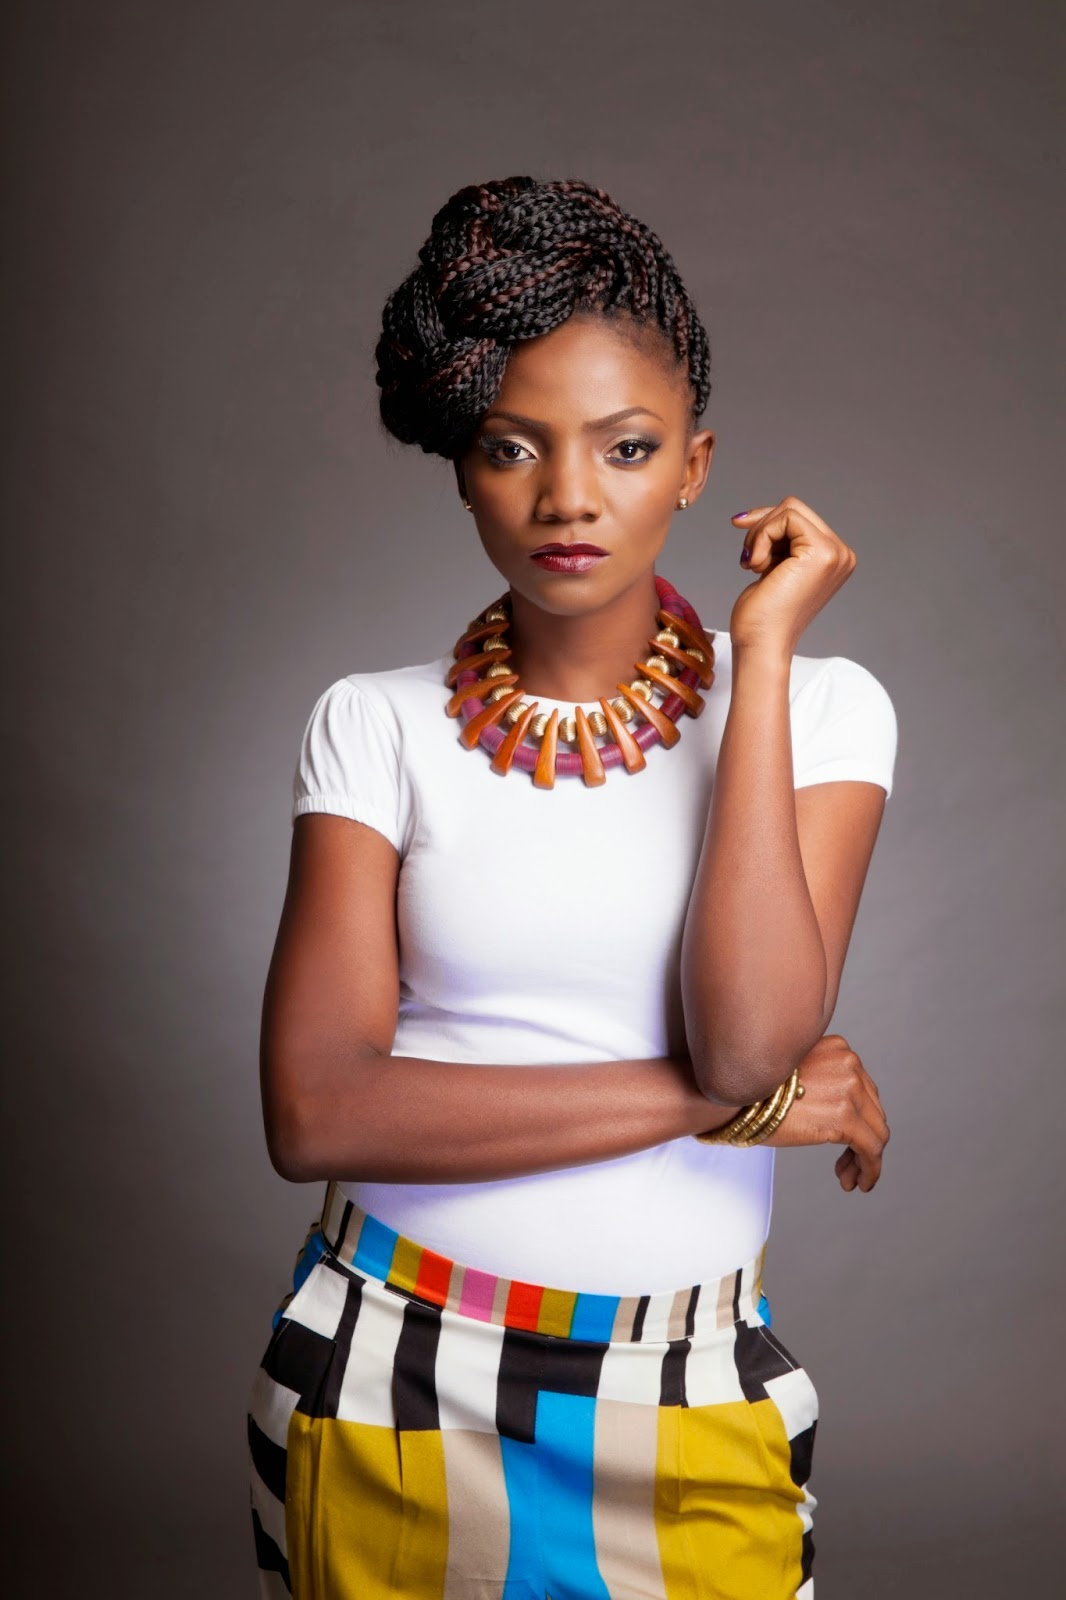 5 Interesting Facts About Simi You Don't Know